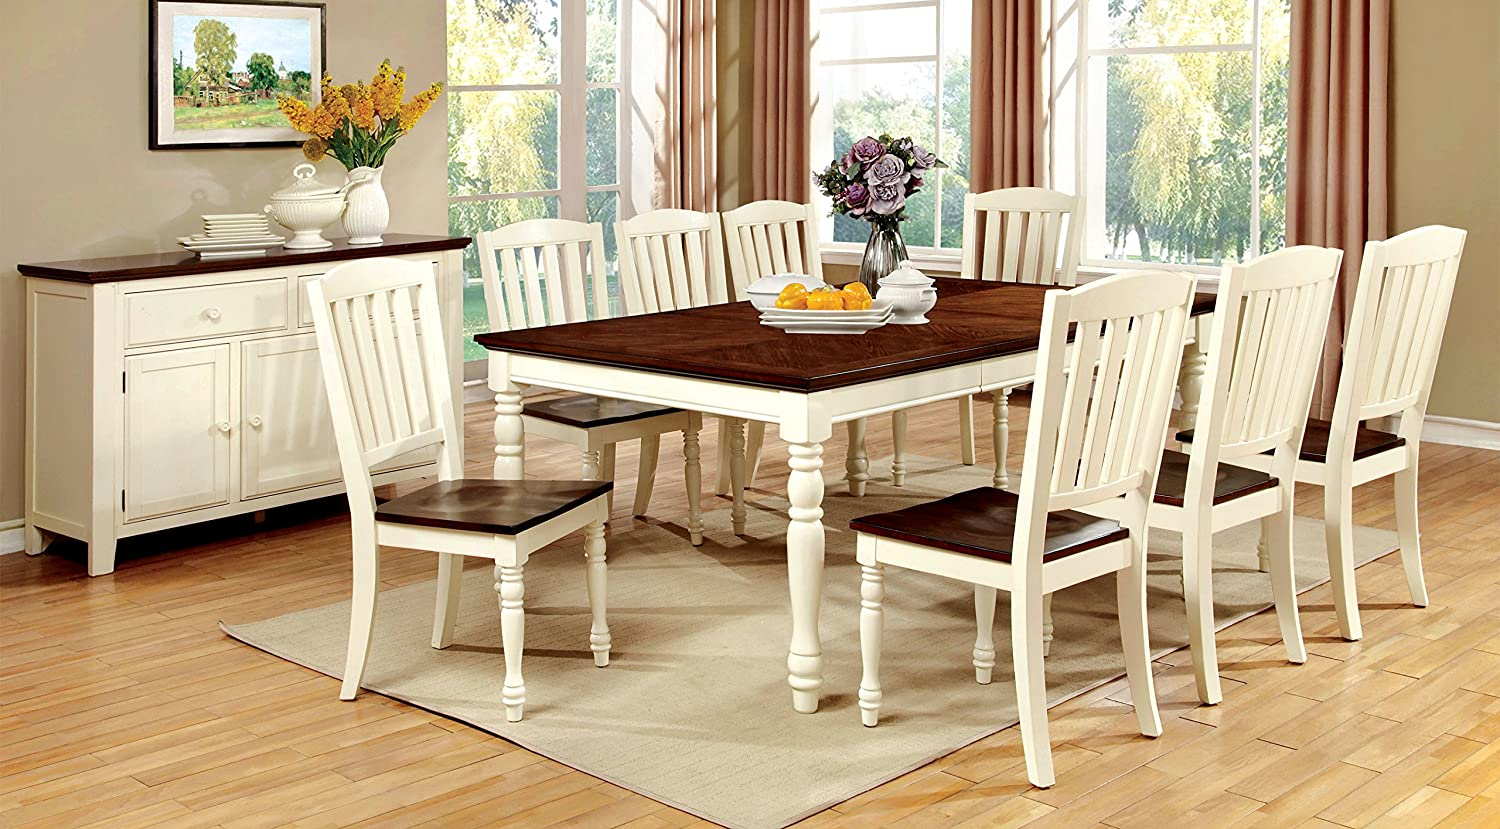 cresent two wolf products tone set furniture dining fine round in kitchen pedestal cottage cottages table by